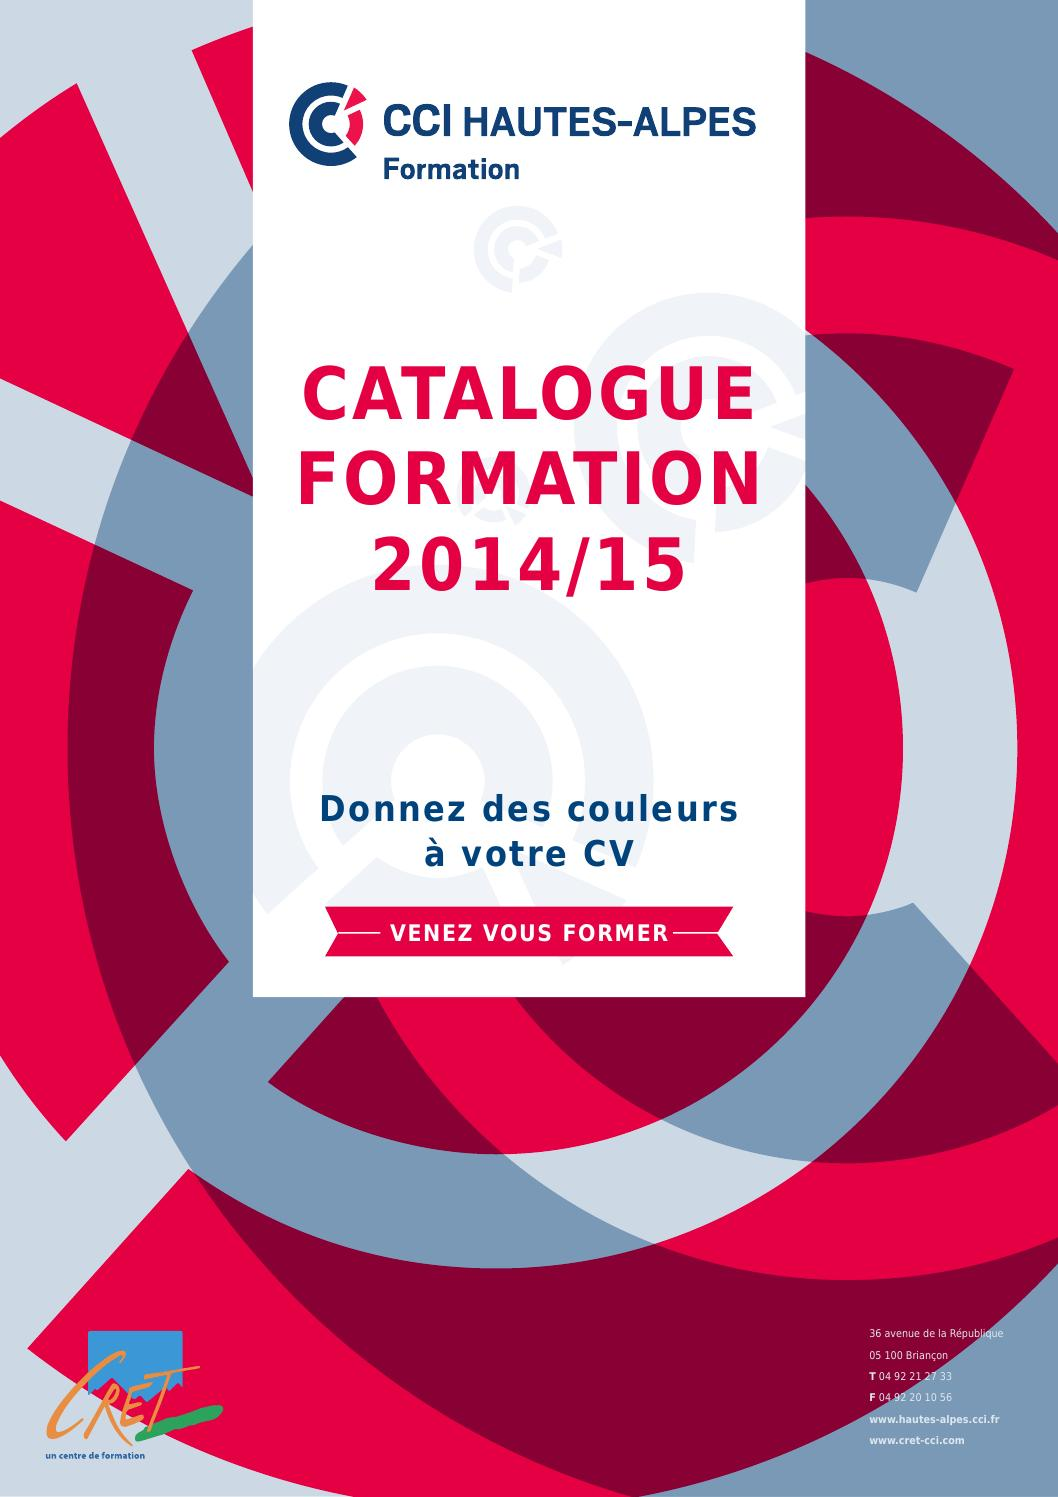 cci hautes-alpes formation 2014-2015 by cret